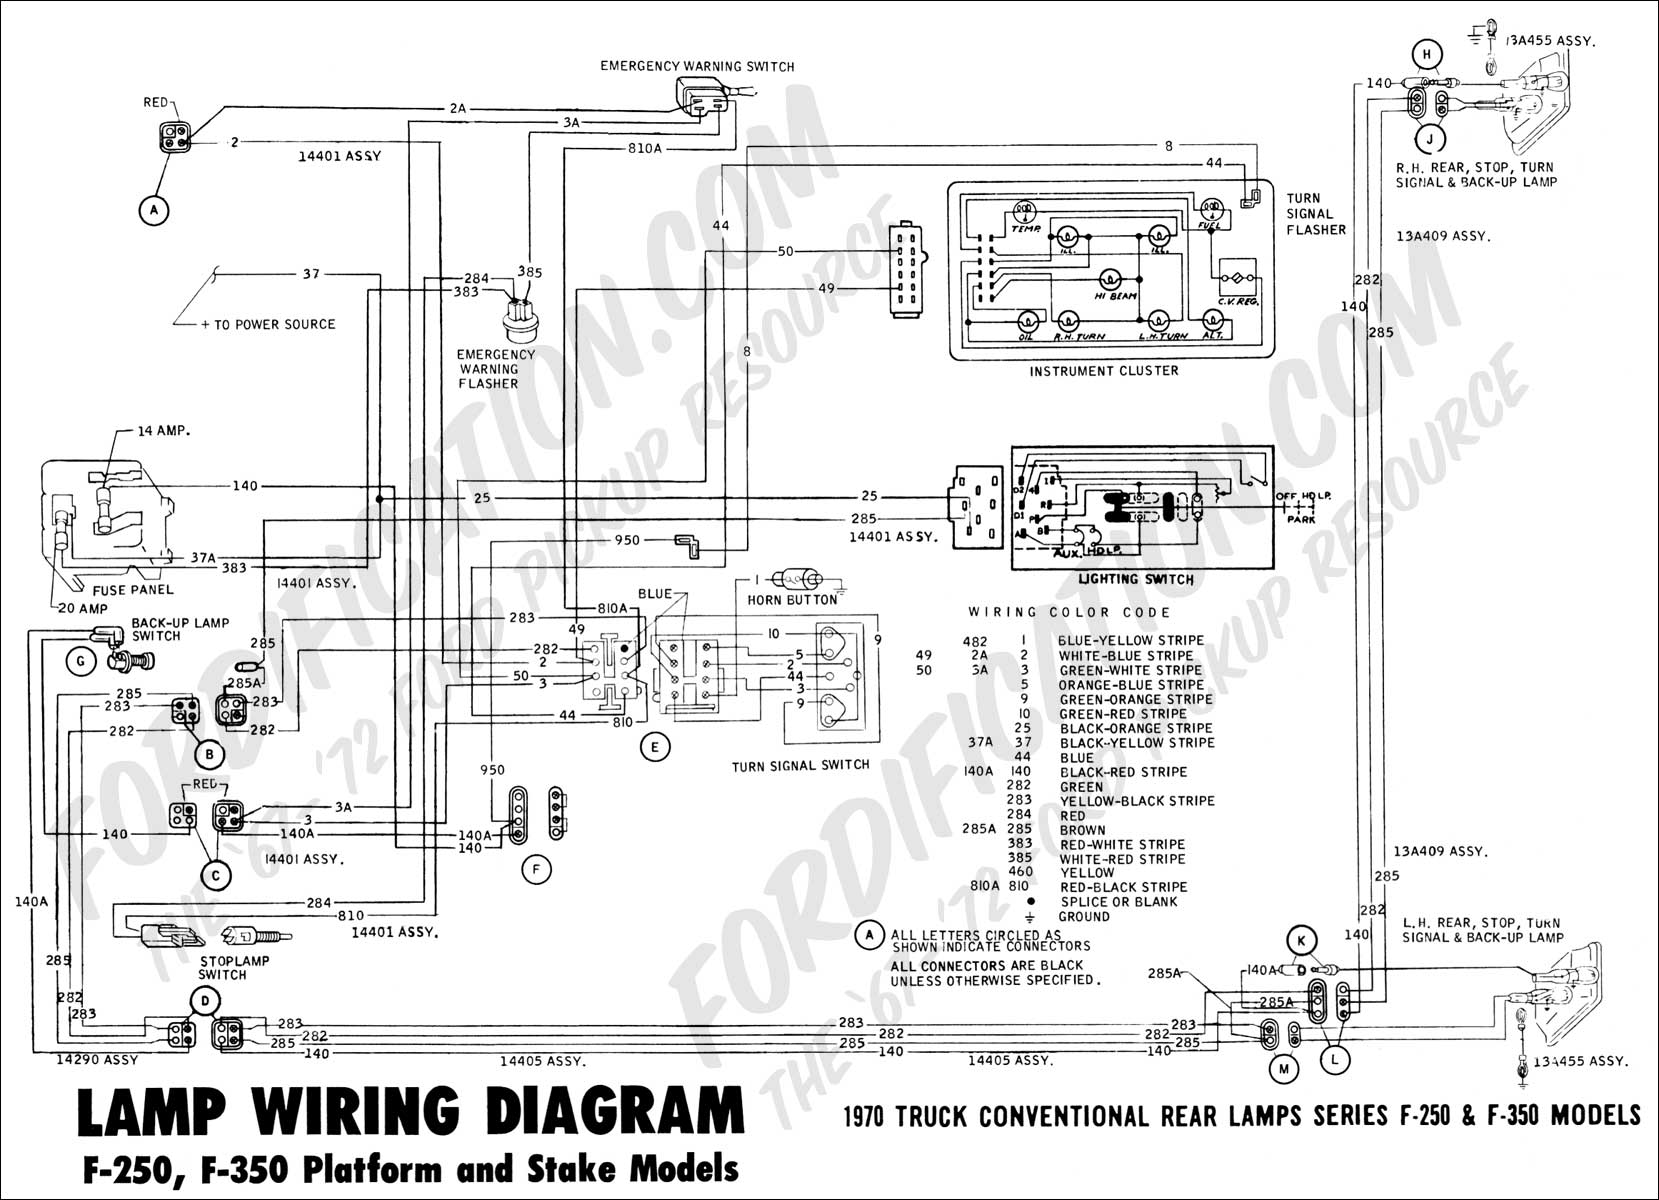 hight resolution of 2005 f150 fuse diagram brake ford tail light wiring diagram wiring diagram privford tail light wiring diagram